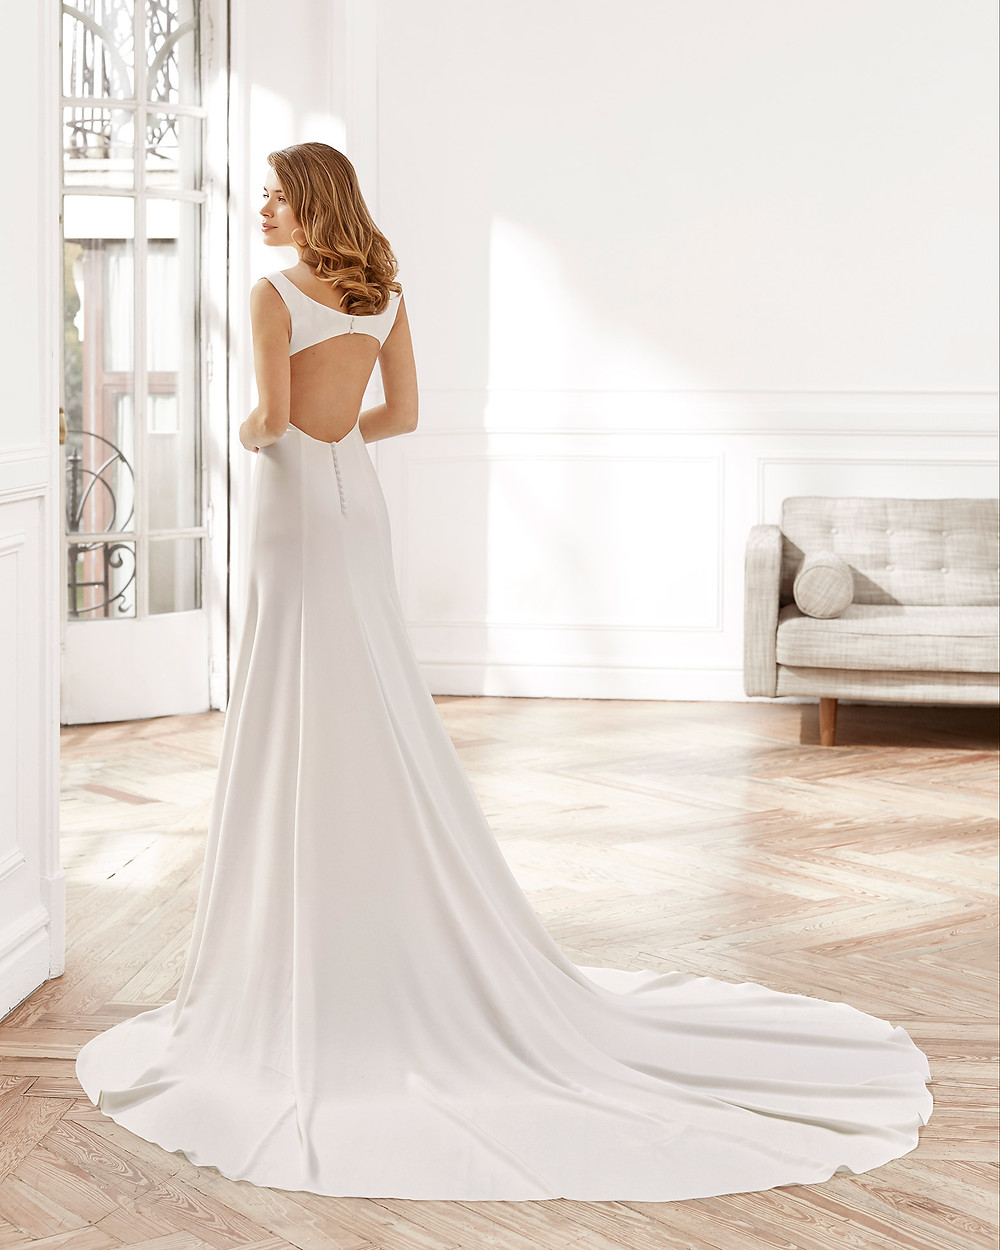 An Aire Barcelona 2020 simple crepe A-line wedding dress with a keyhole back